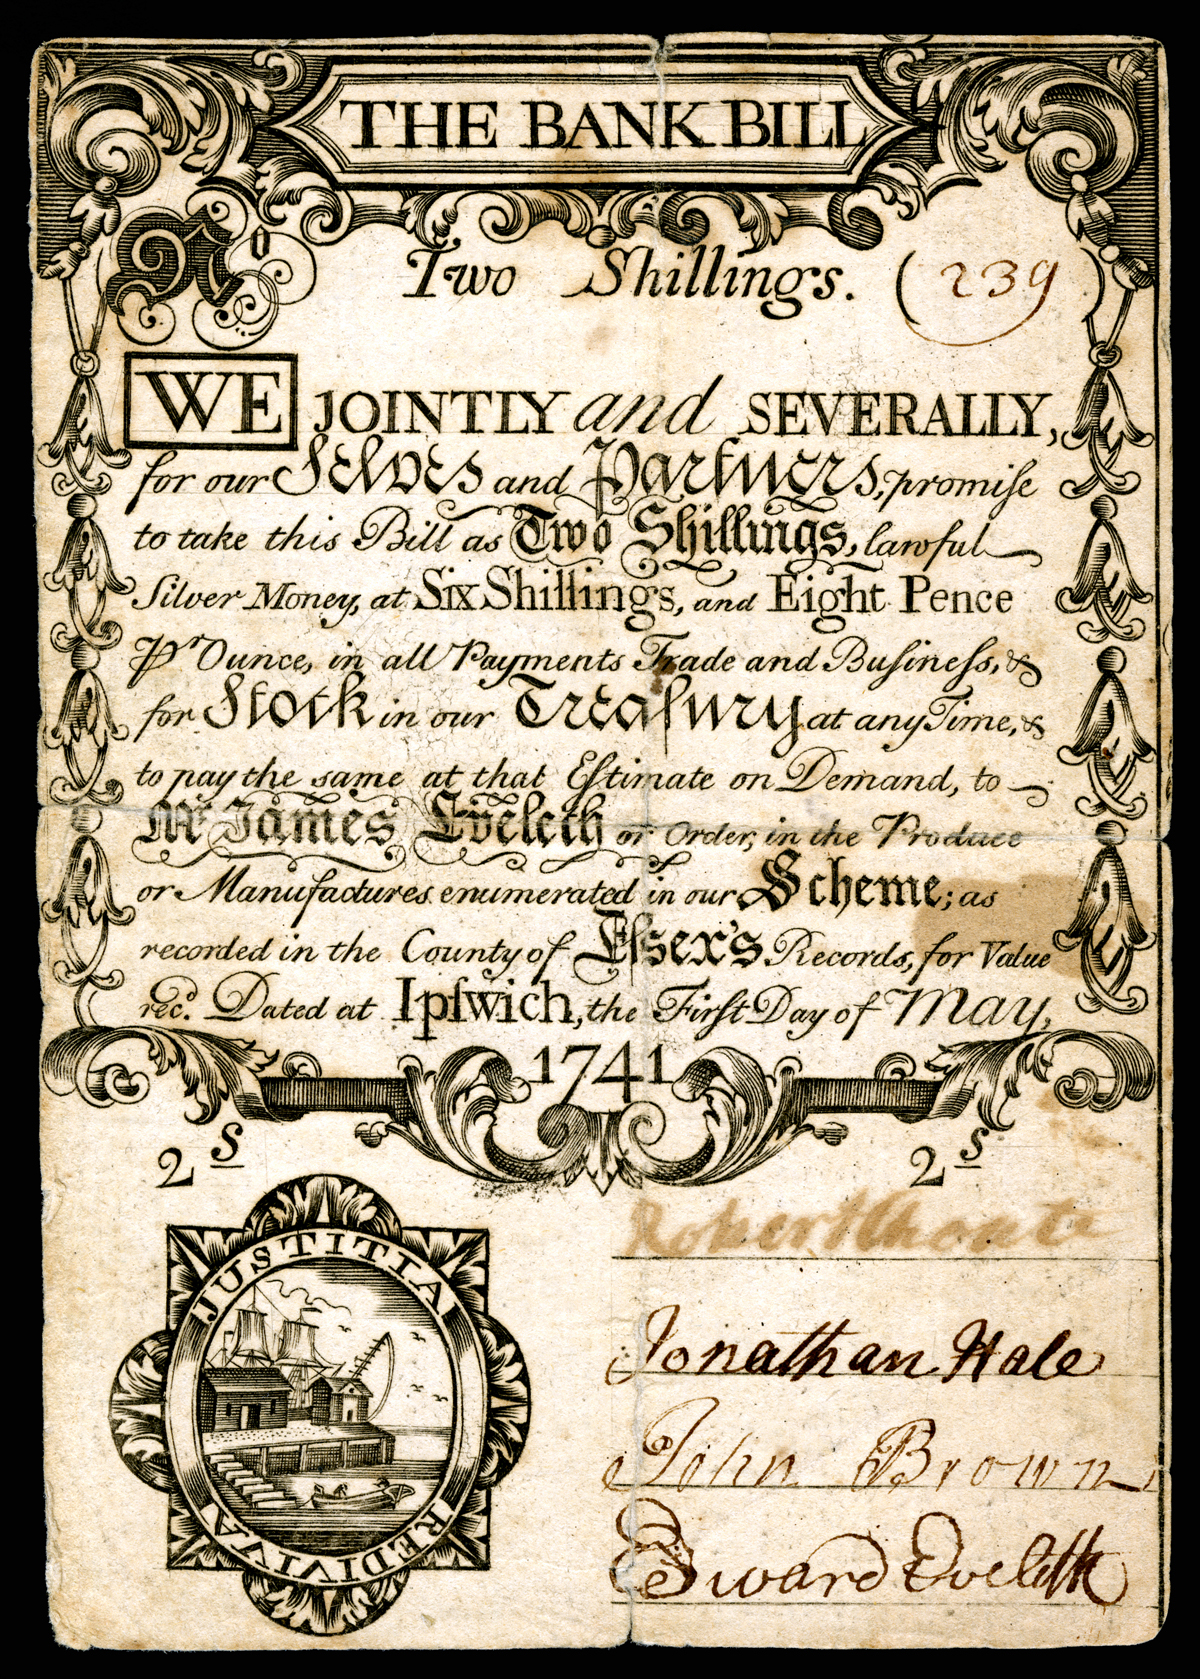 Ipswich land bank currency